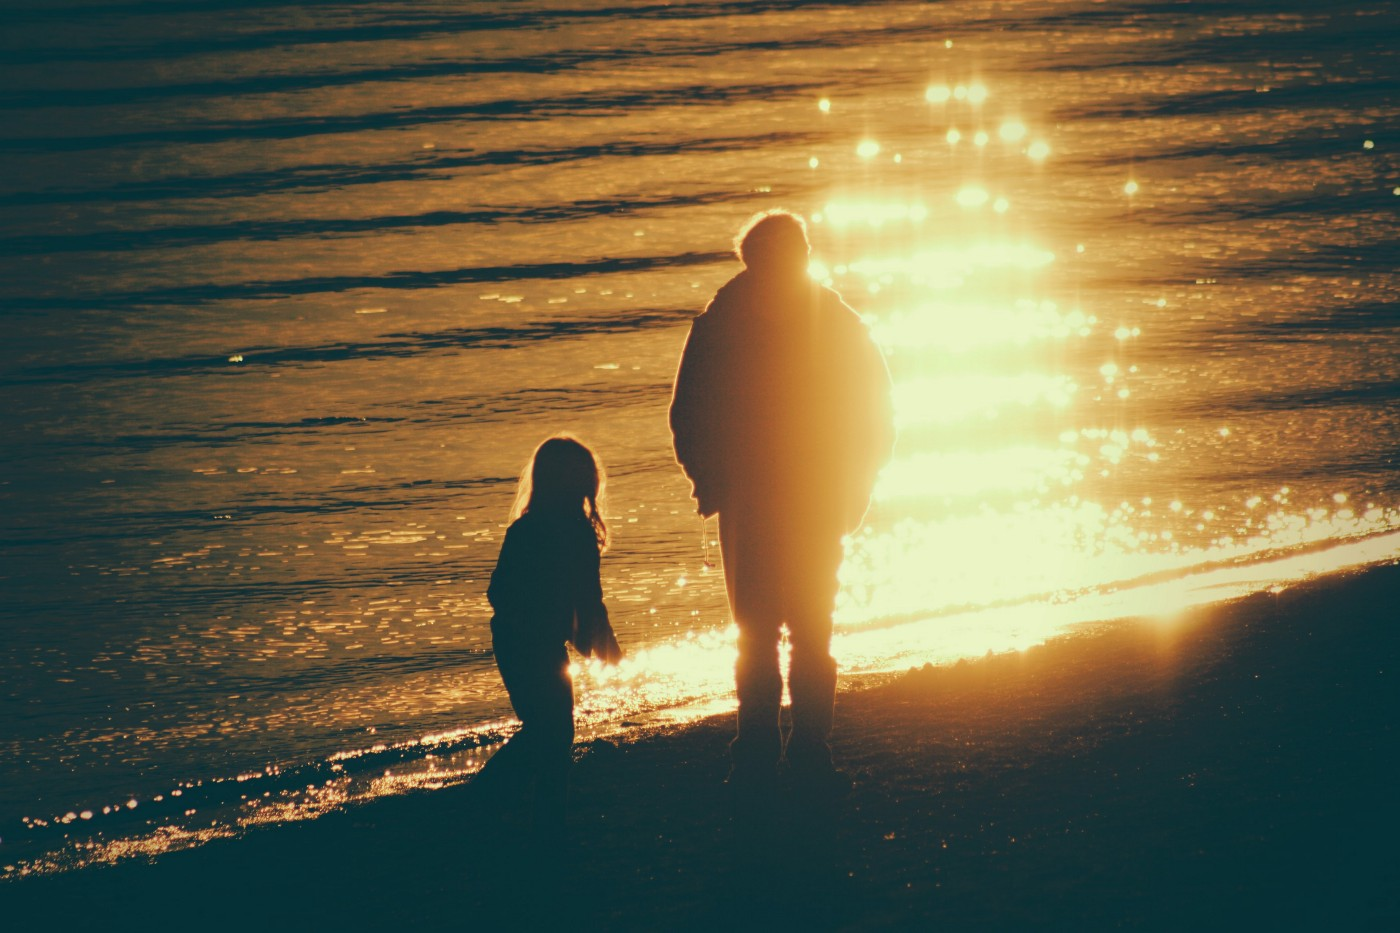 father and daughter in silhouette on beach at sunset